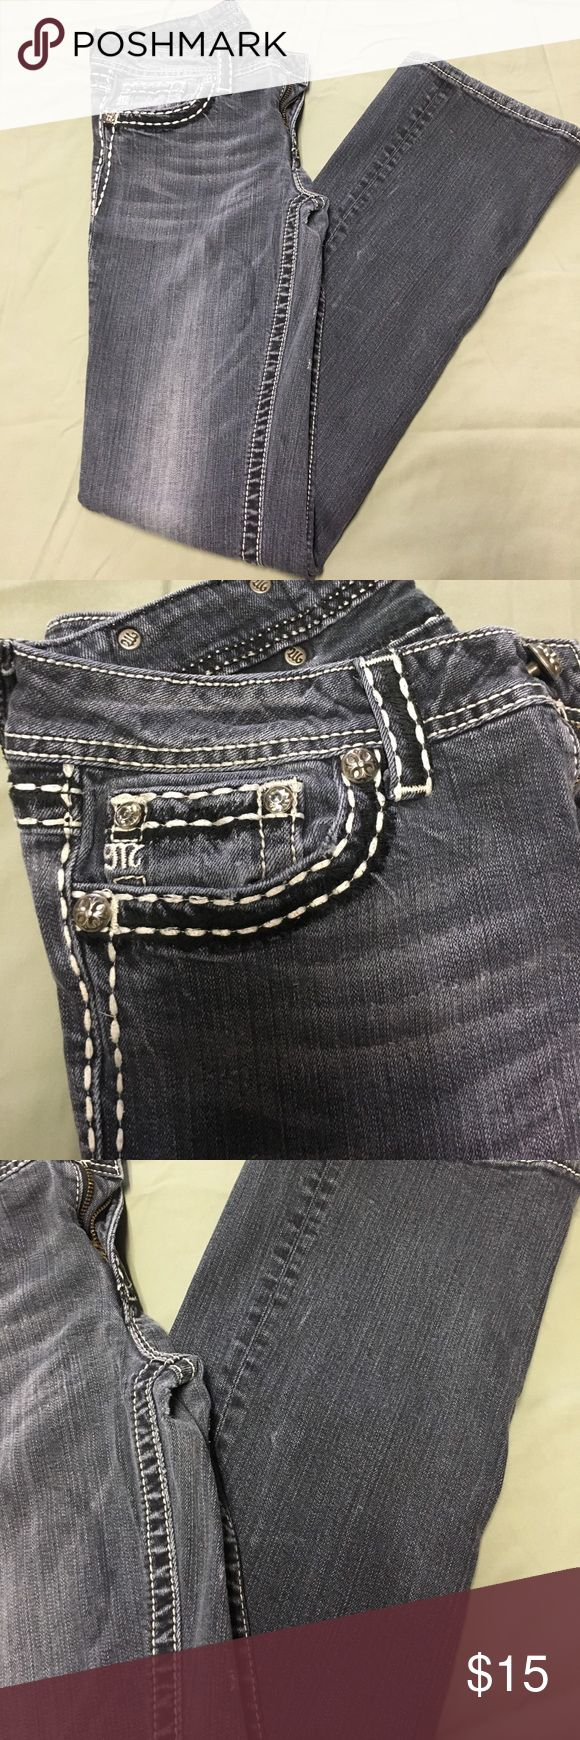 Miss Me - Gray Denim bootcut jeans Worn condition. Some wear and tear. Size 30 (inseam 35) Miss Me Jeans Boot Cut